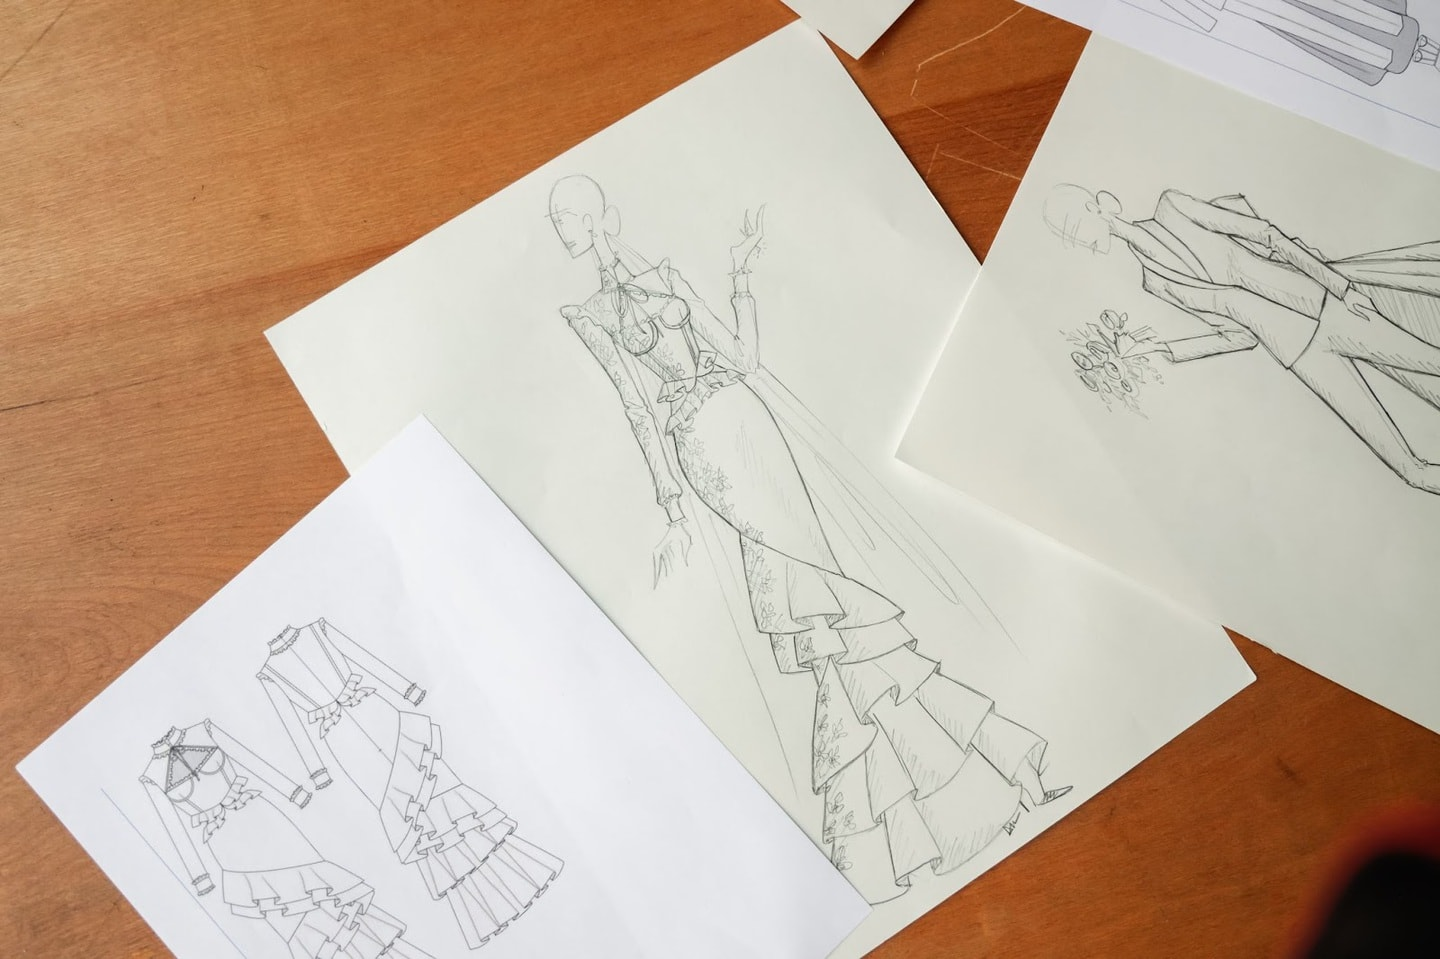 A clothing manufacturer's fashion sketch